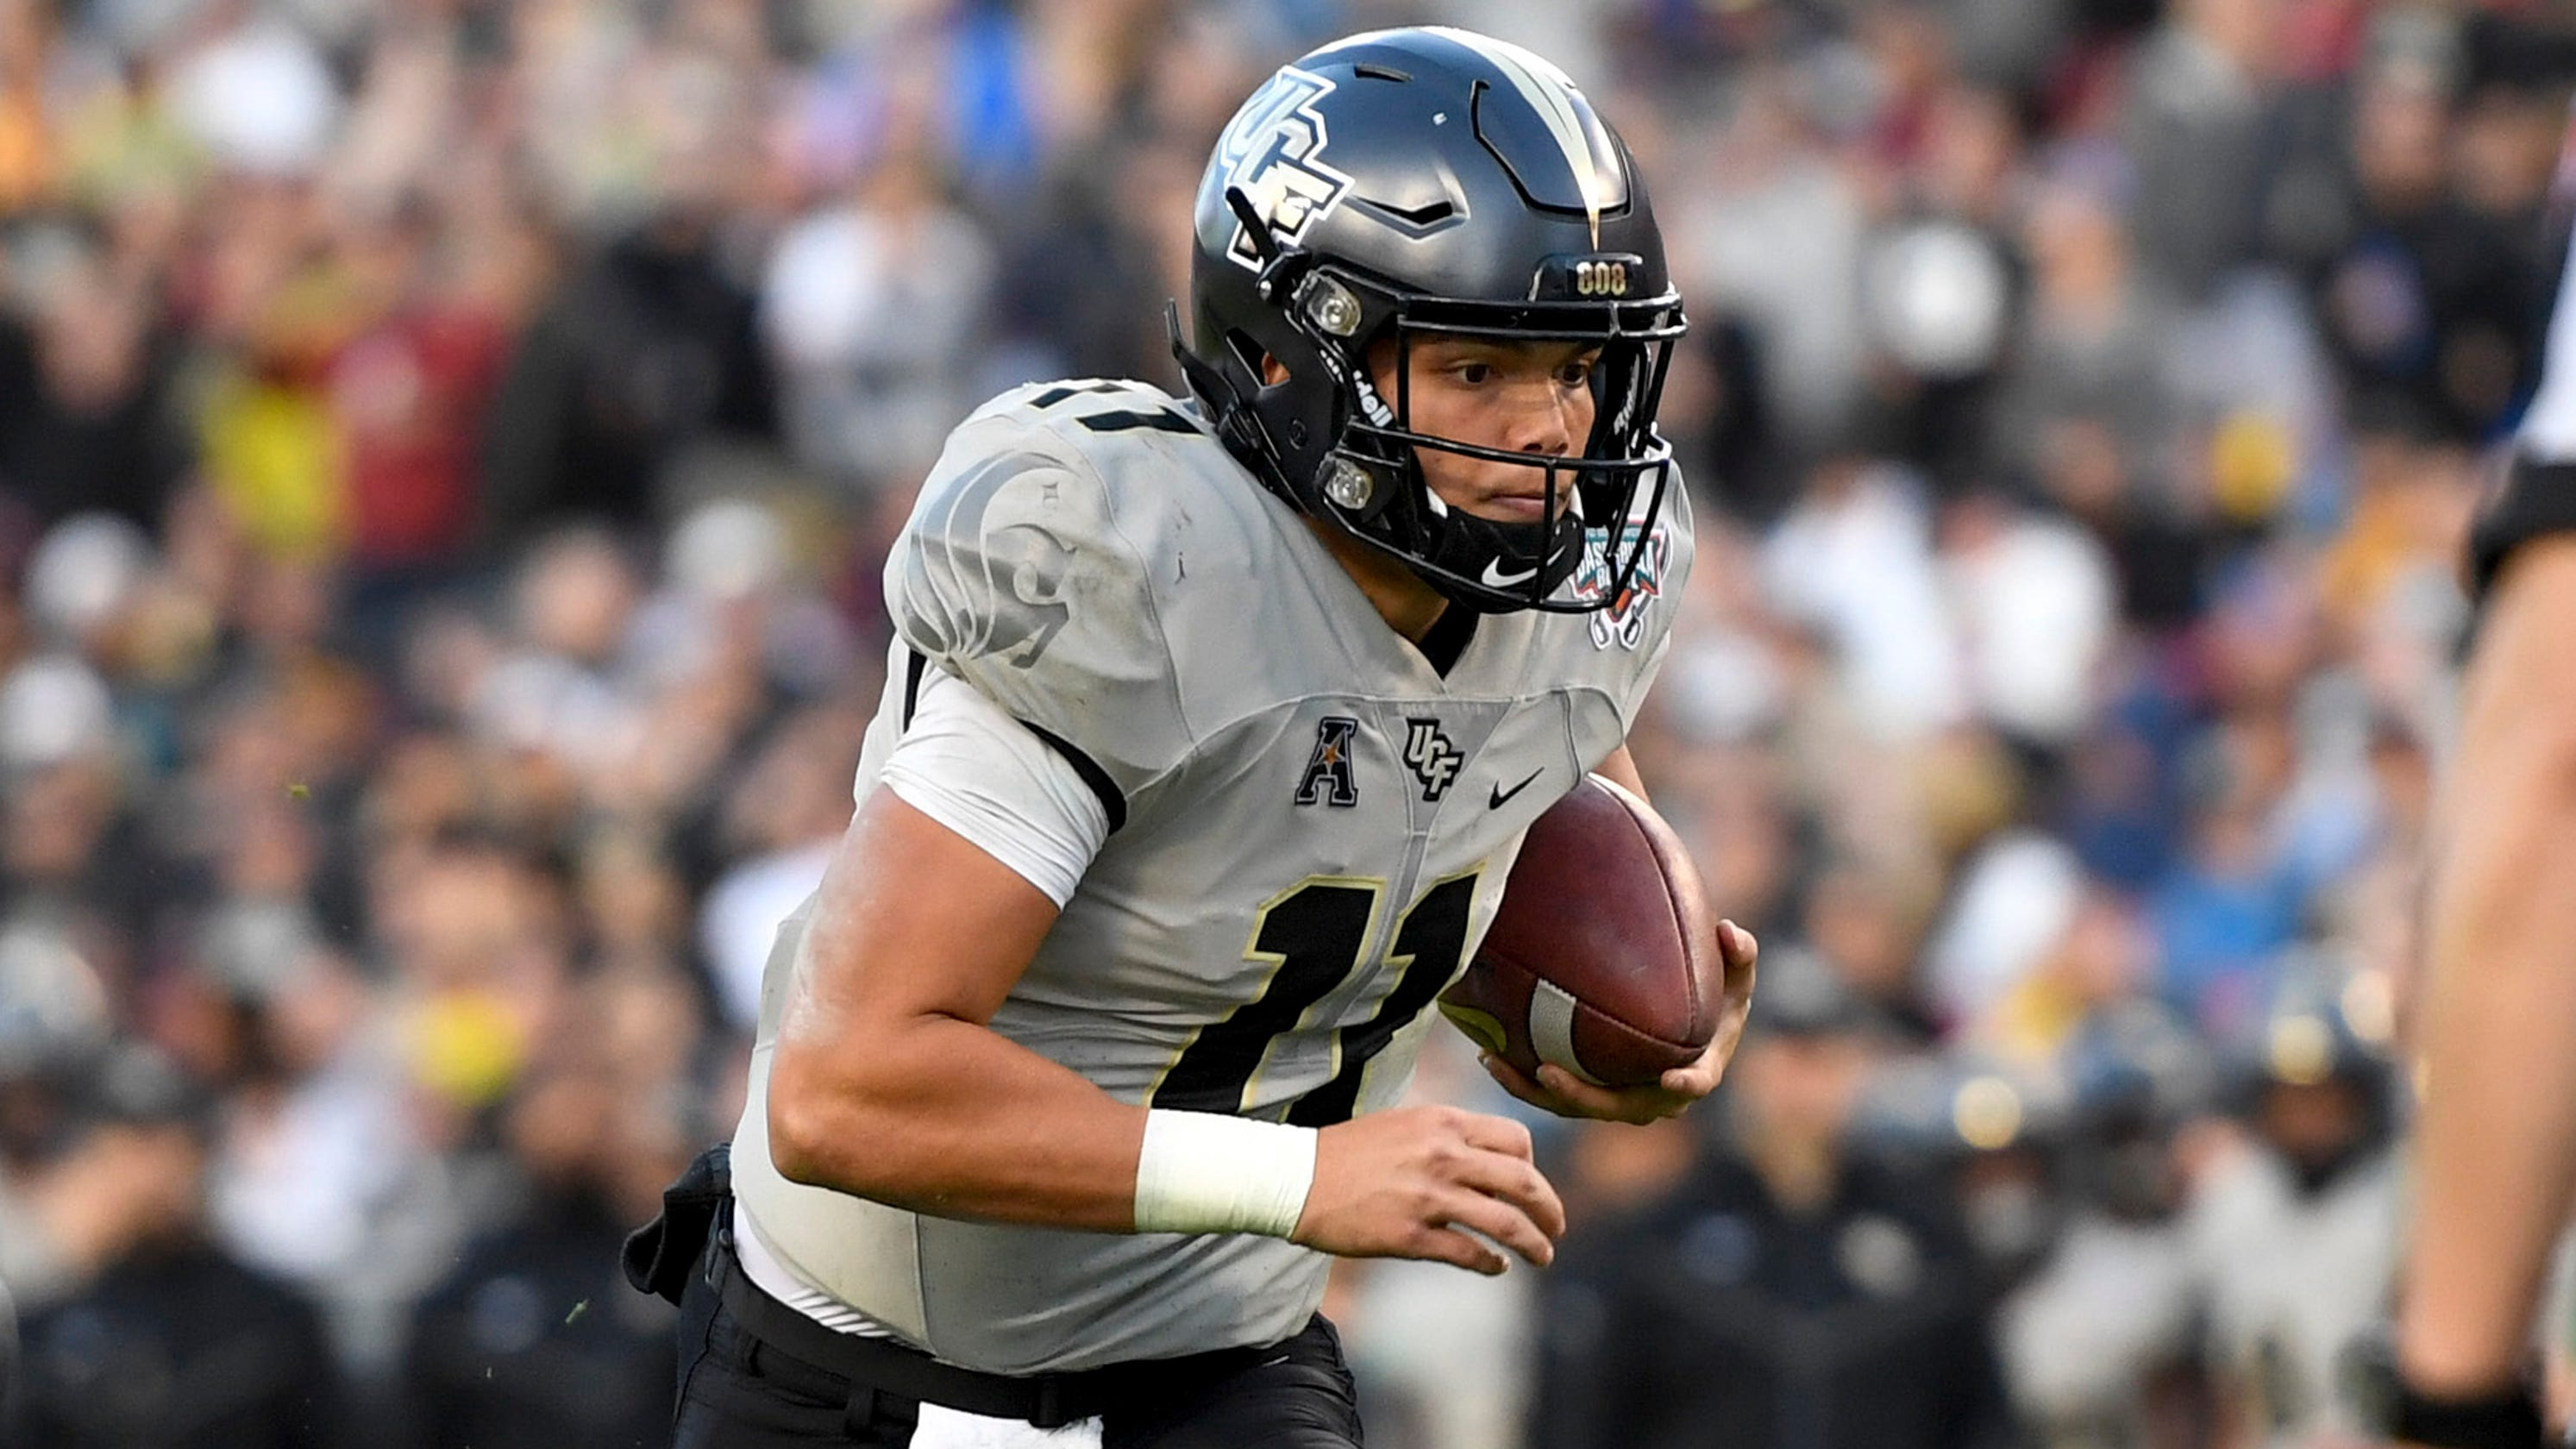 College football winners and losers led by UCF, Clemson, Notre Dame